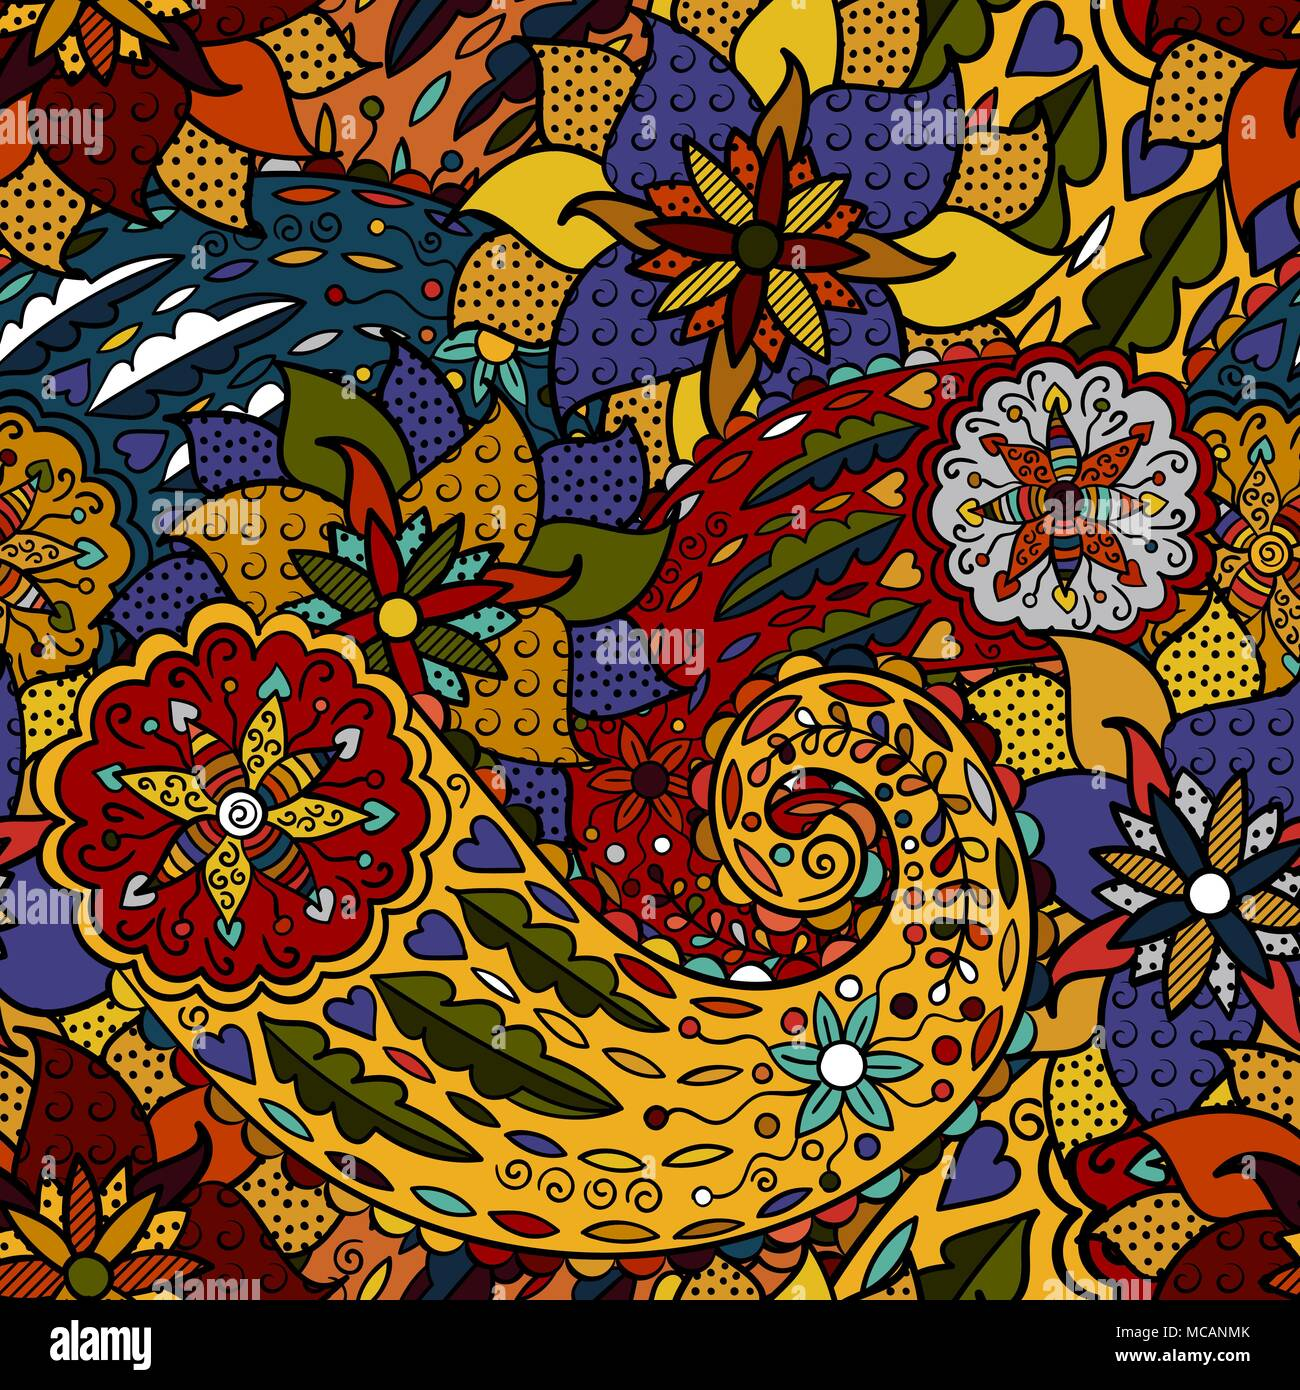 hand drawn colorful aztec pattern with artistic pattern